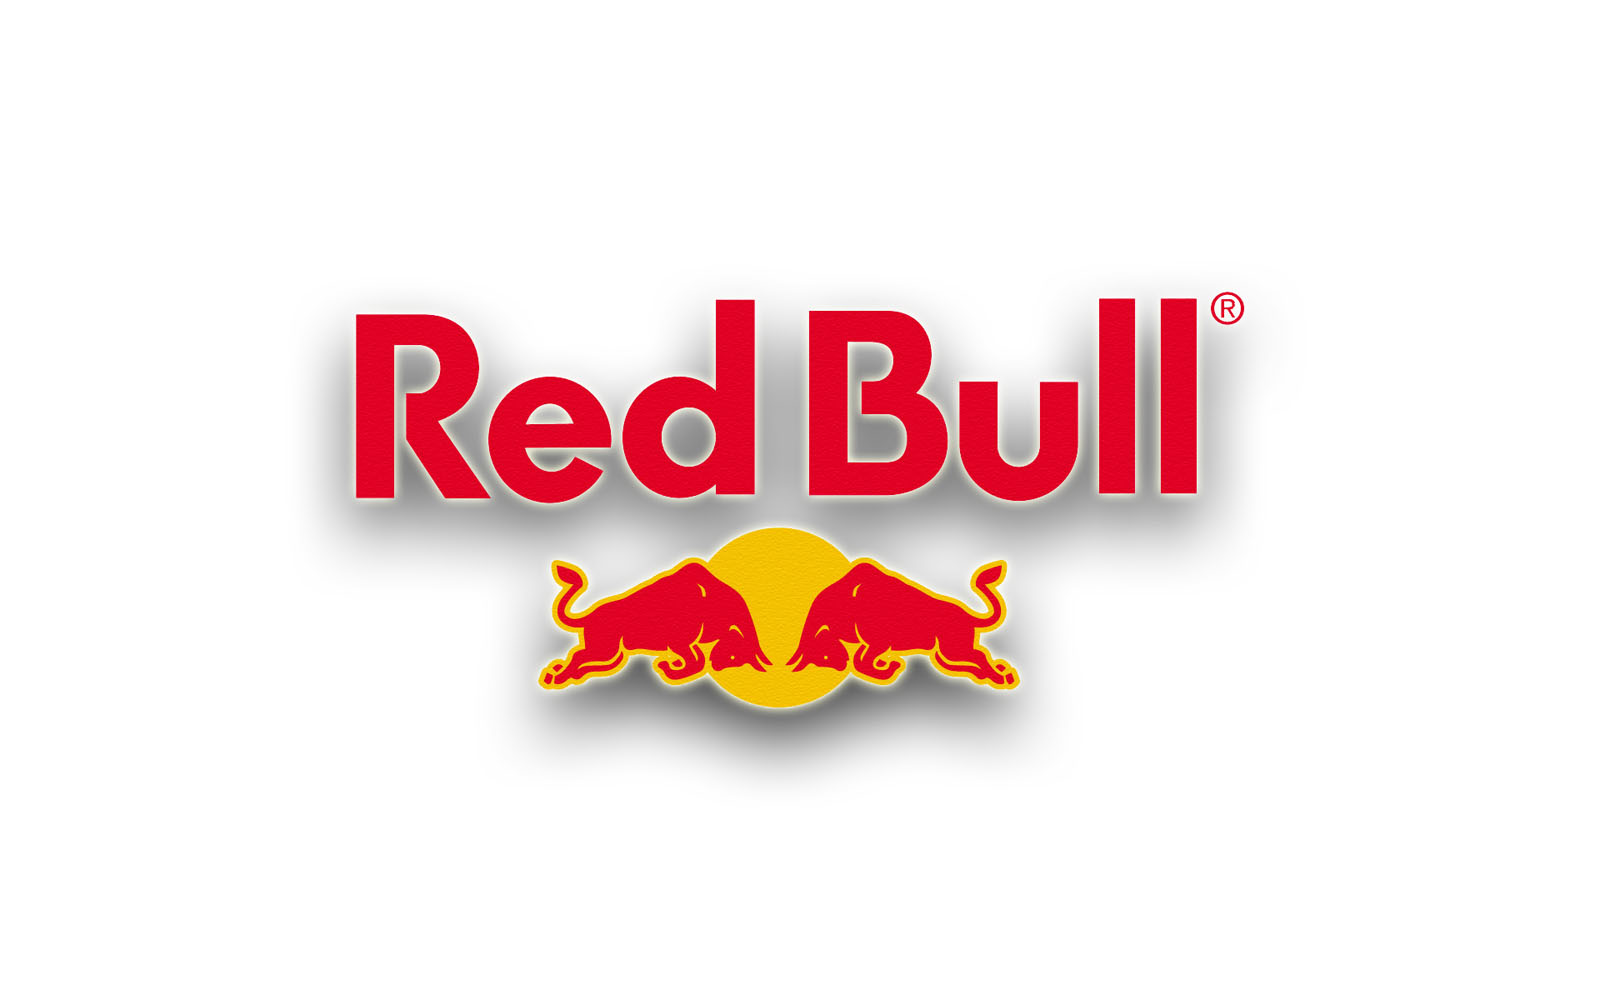 Free Download 3d Wallpapers For Windows 7 Desktop Wallpapers Red Bull Wallpapers